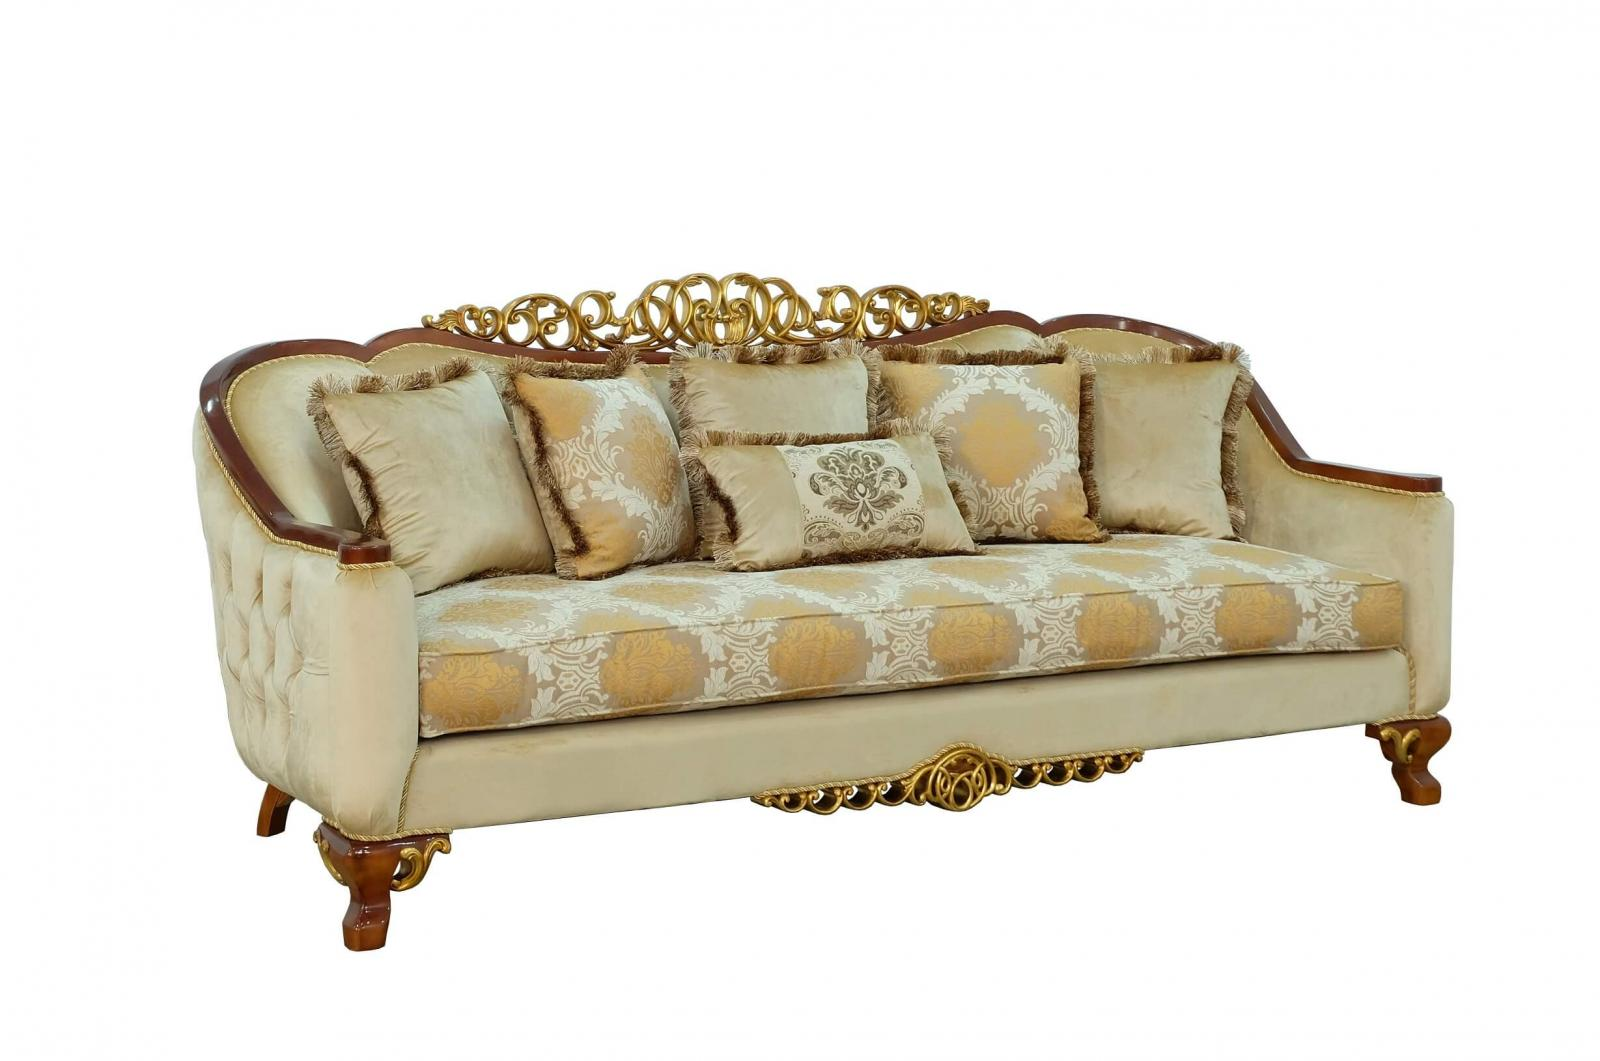 Classic  Traditional Brown  Gold Wood  Solid Hardwood and Fabric Sofa EUROPEAN FURNITURE 45354-S